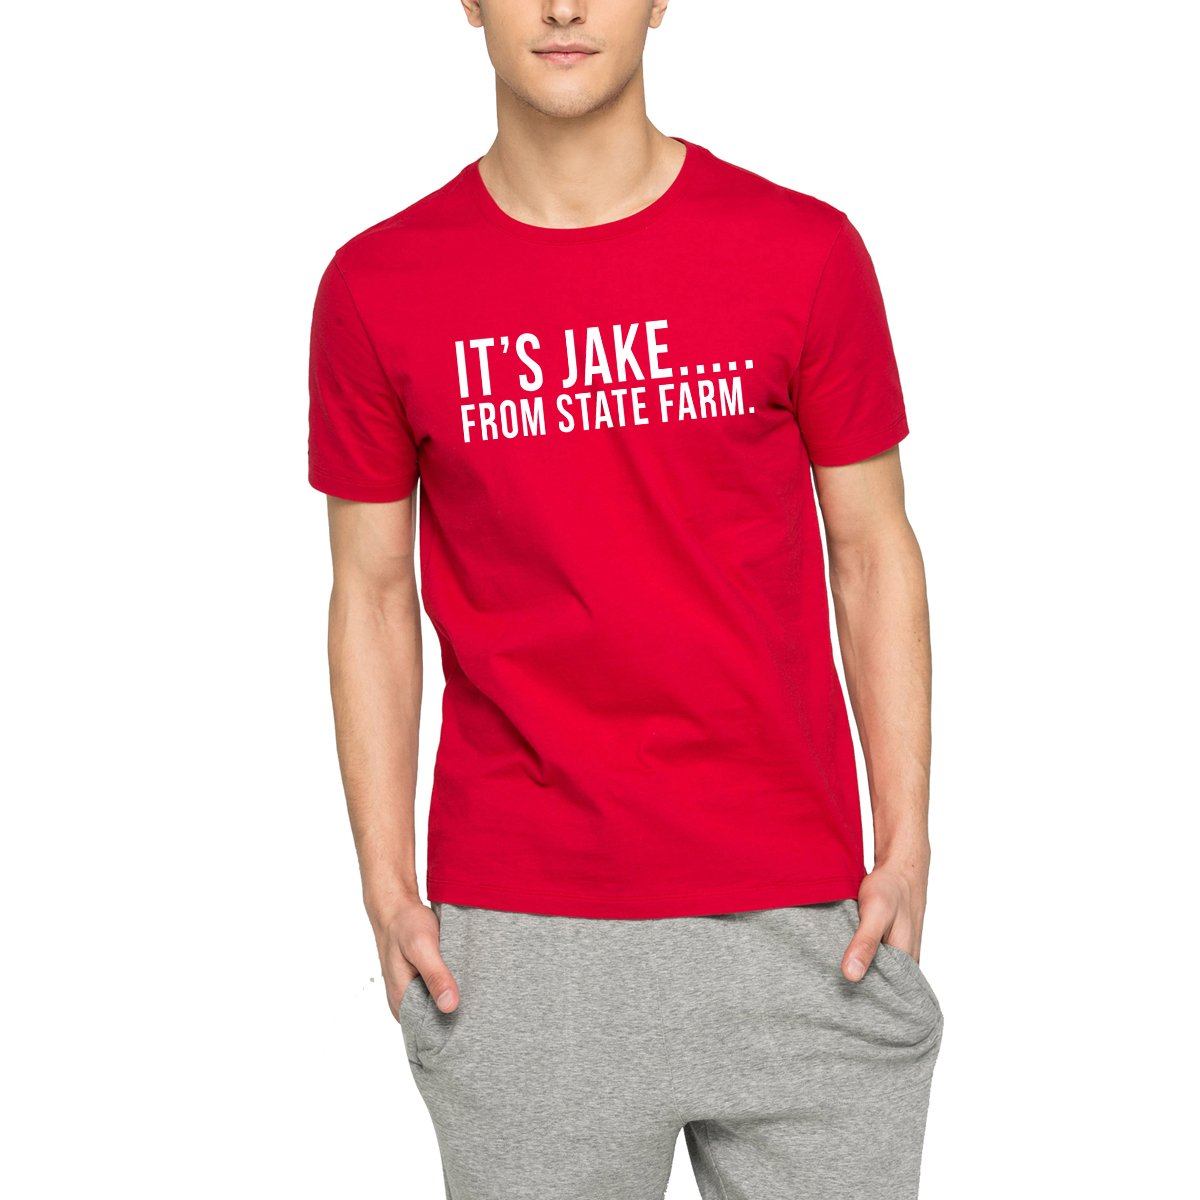 Loo Show S It S Jake From State Farm Funny Commercial S T Shirt Tee